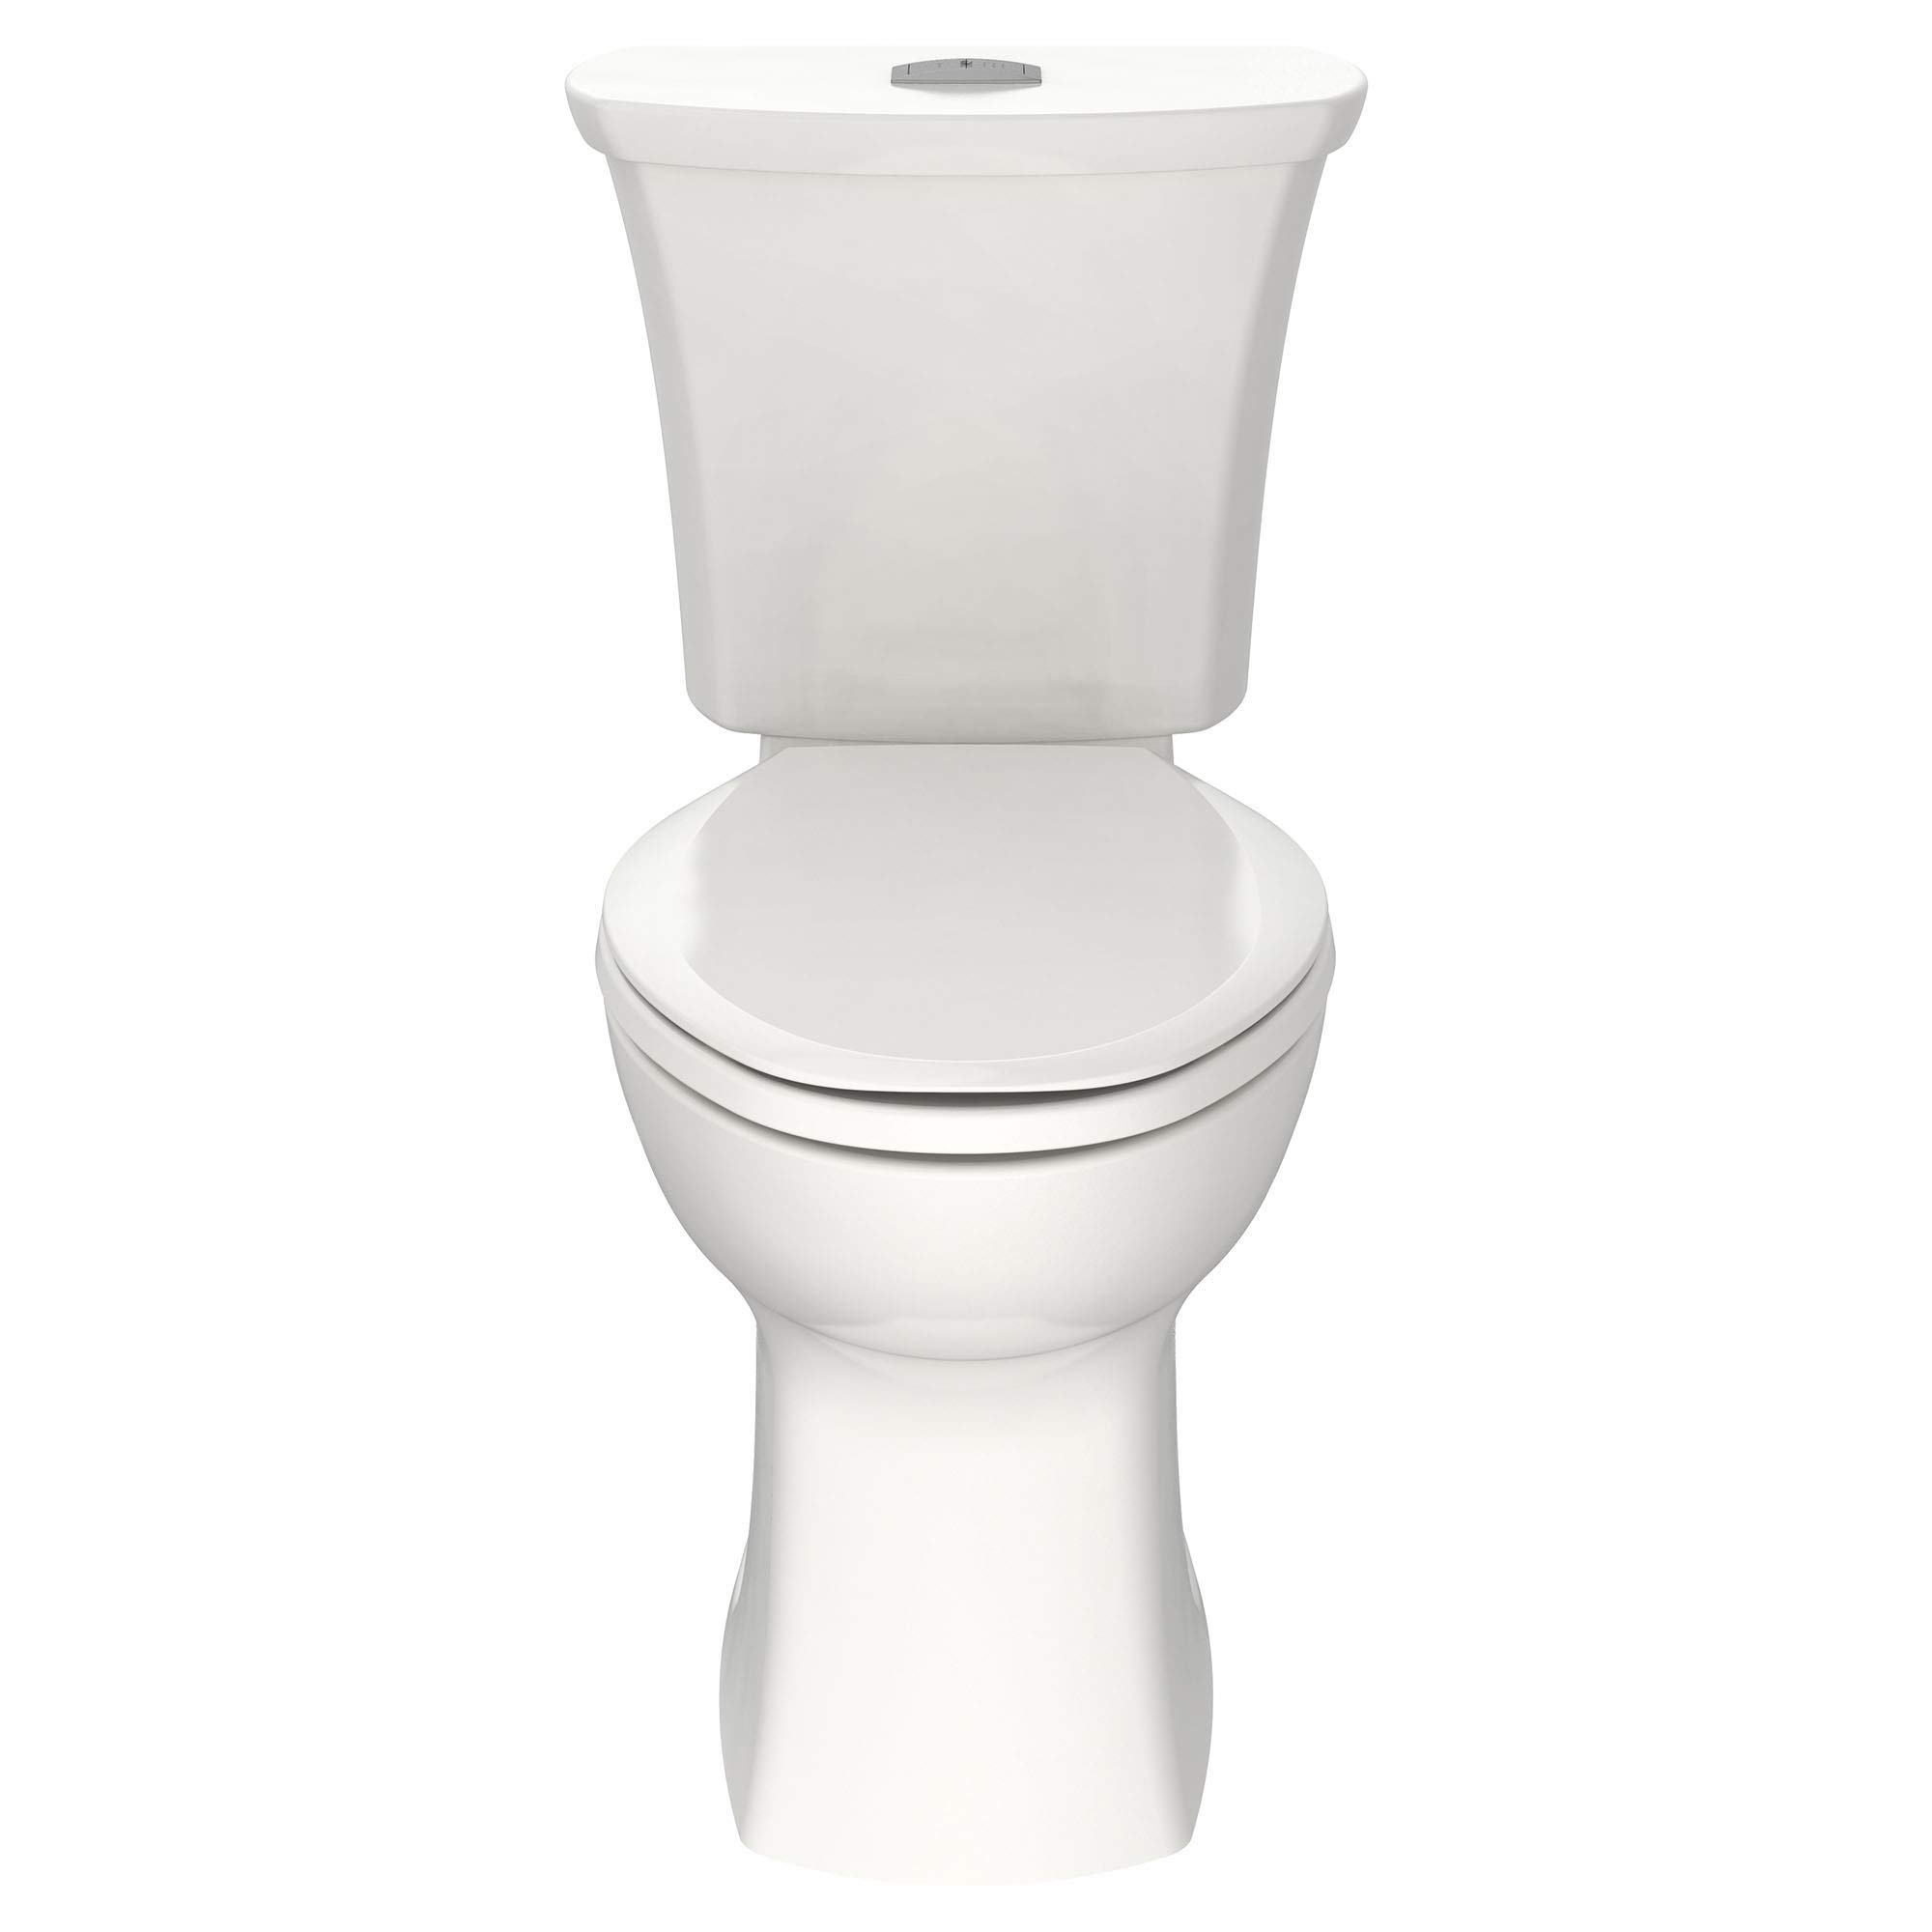 American Standard 204AA200.020 Edgemere Right Height Elongated Dual Flush Toilet White